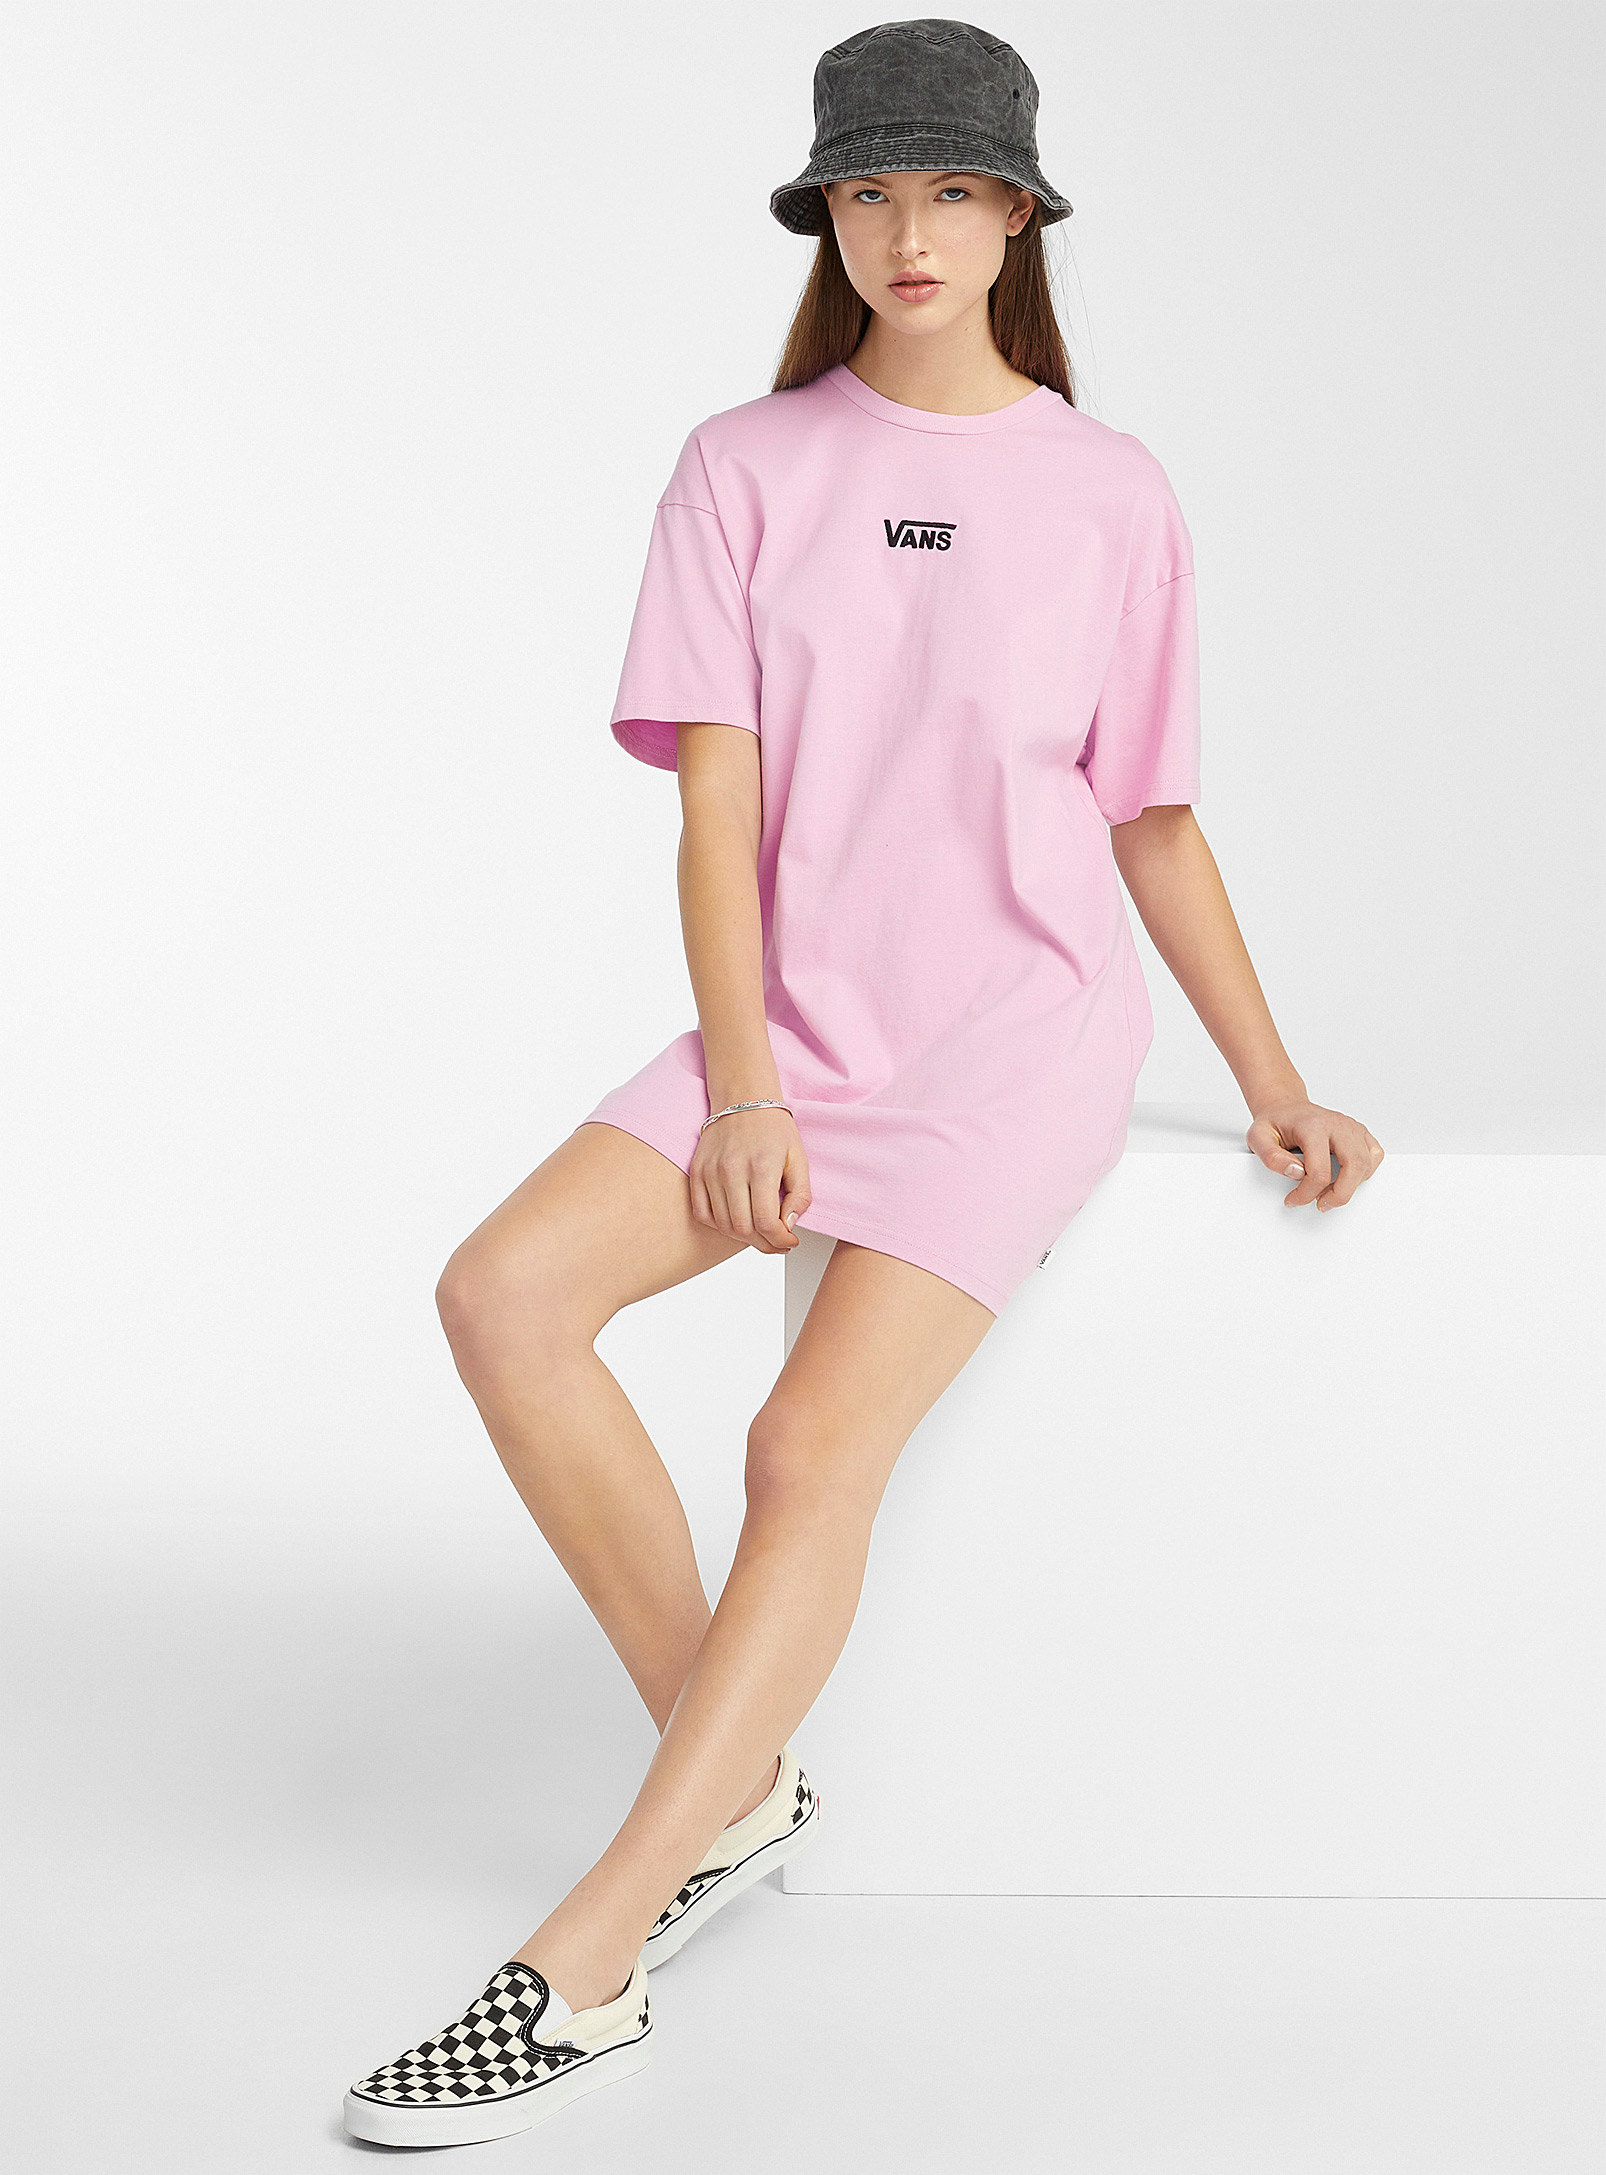 A person wearing a T-shirt dress with Vans shoes